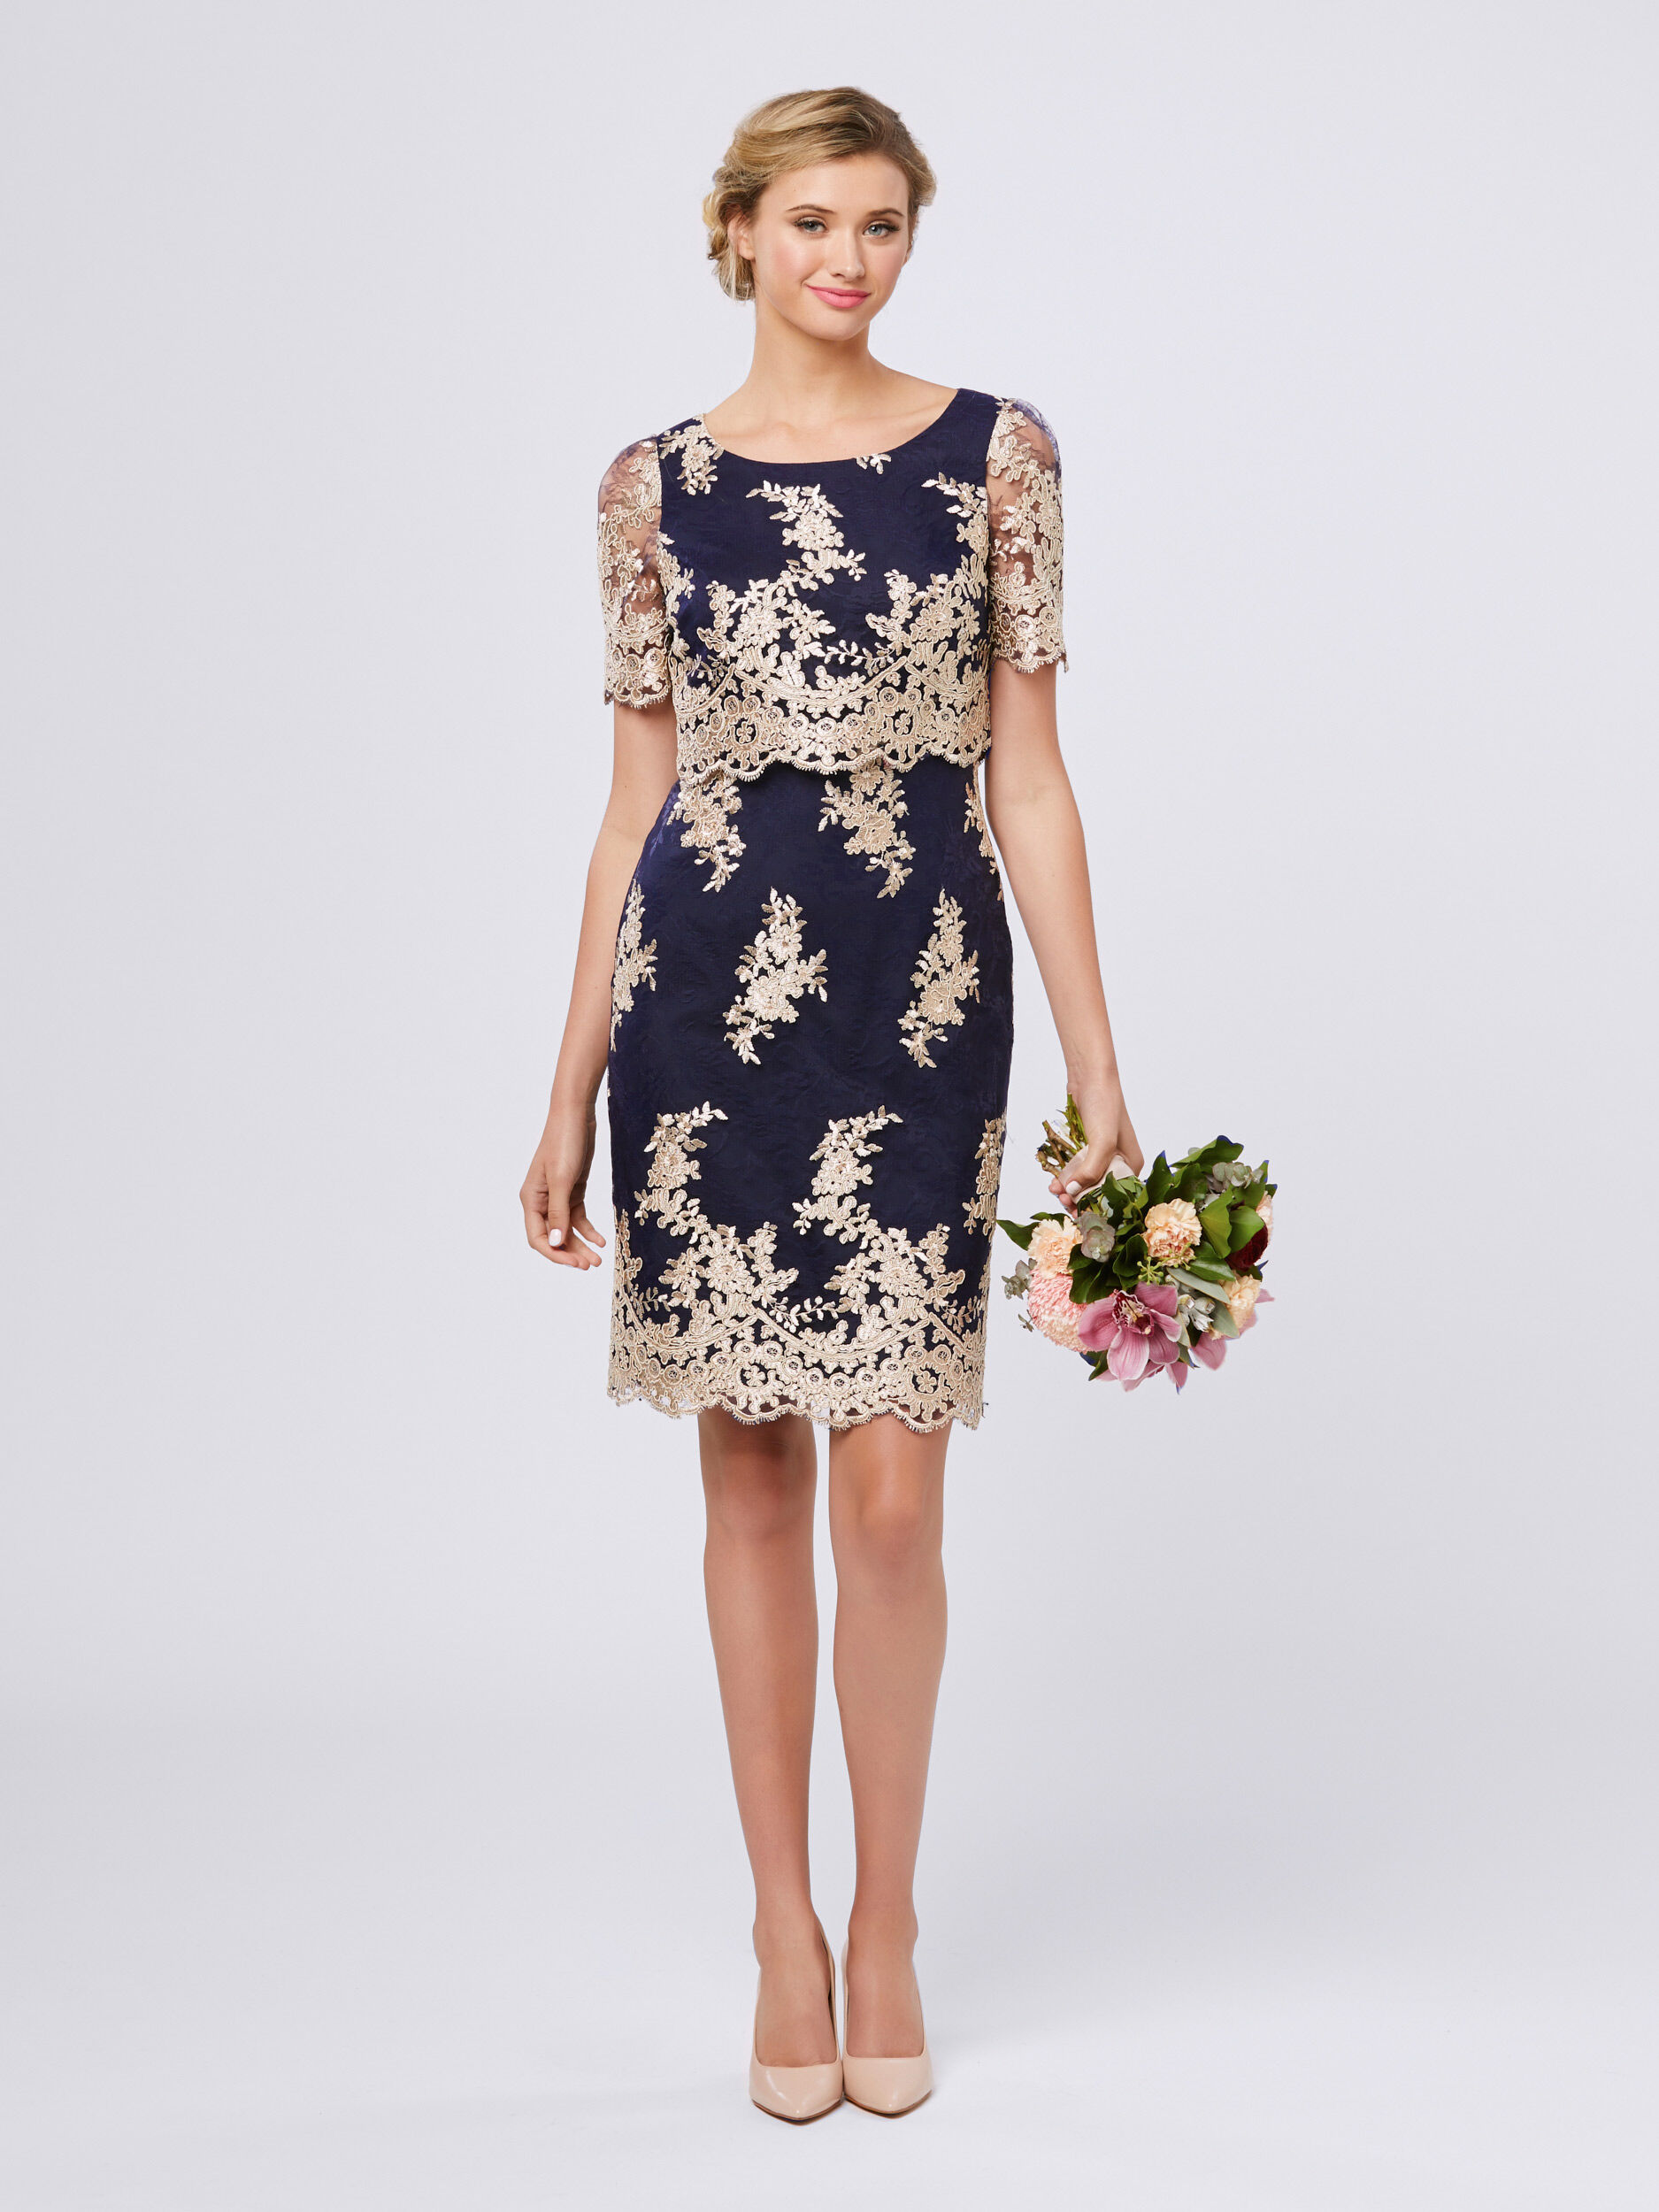 Lace Dresses Online Shopping Ficts